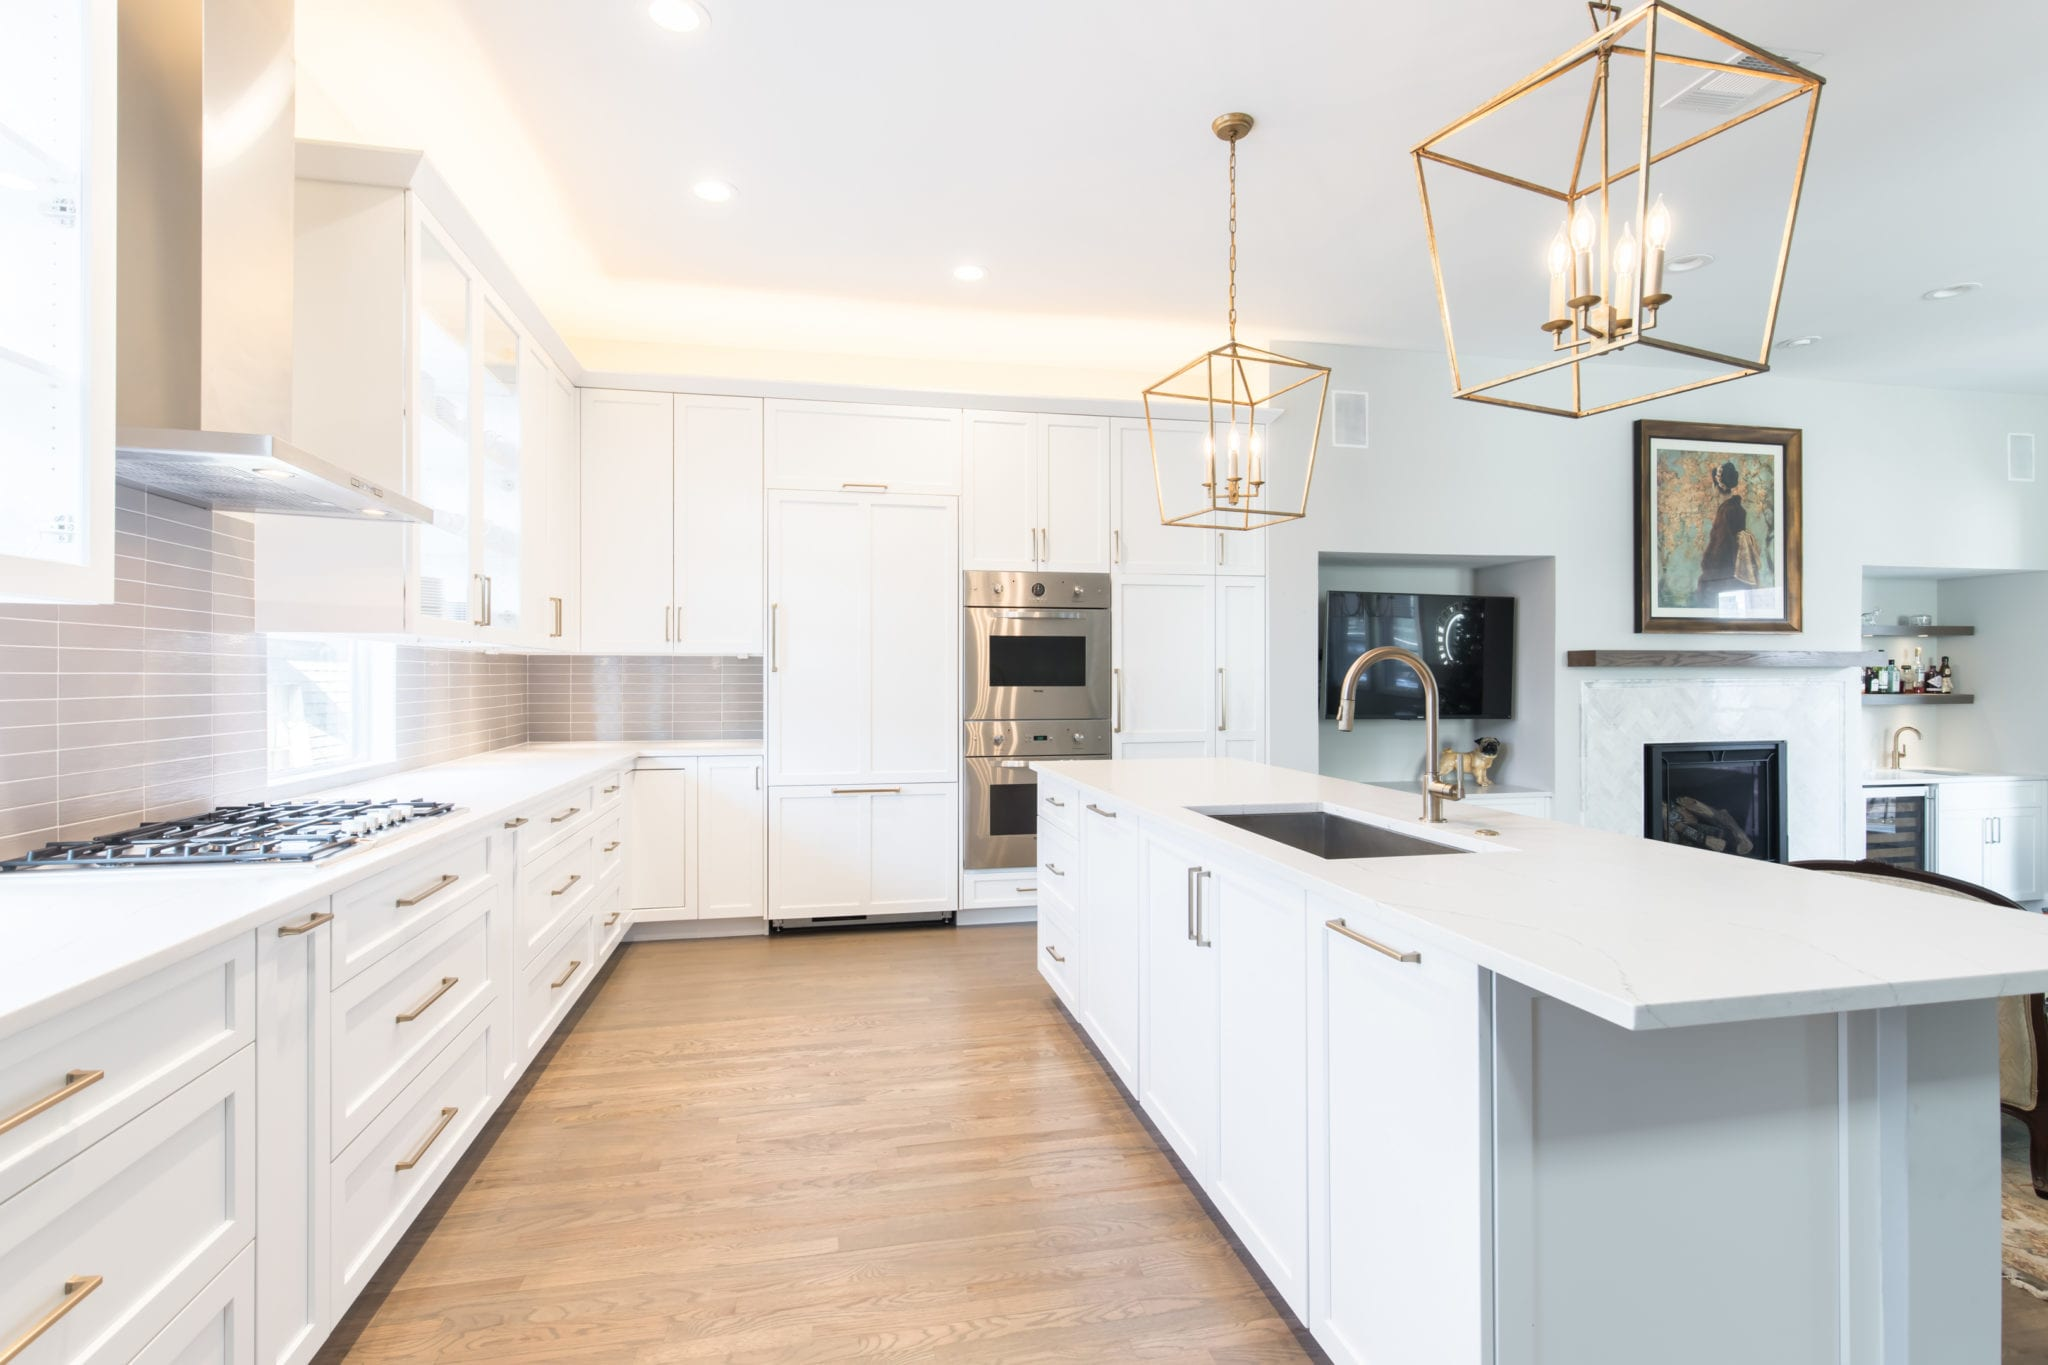 Renowned-Kitchen-Cabinets-and-Re-Finished-Fllors-After-Remodel-Dallas-Texas-Townhome-Condo